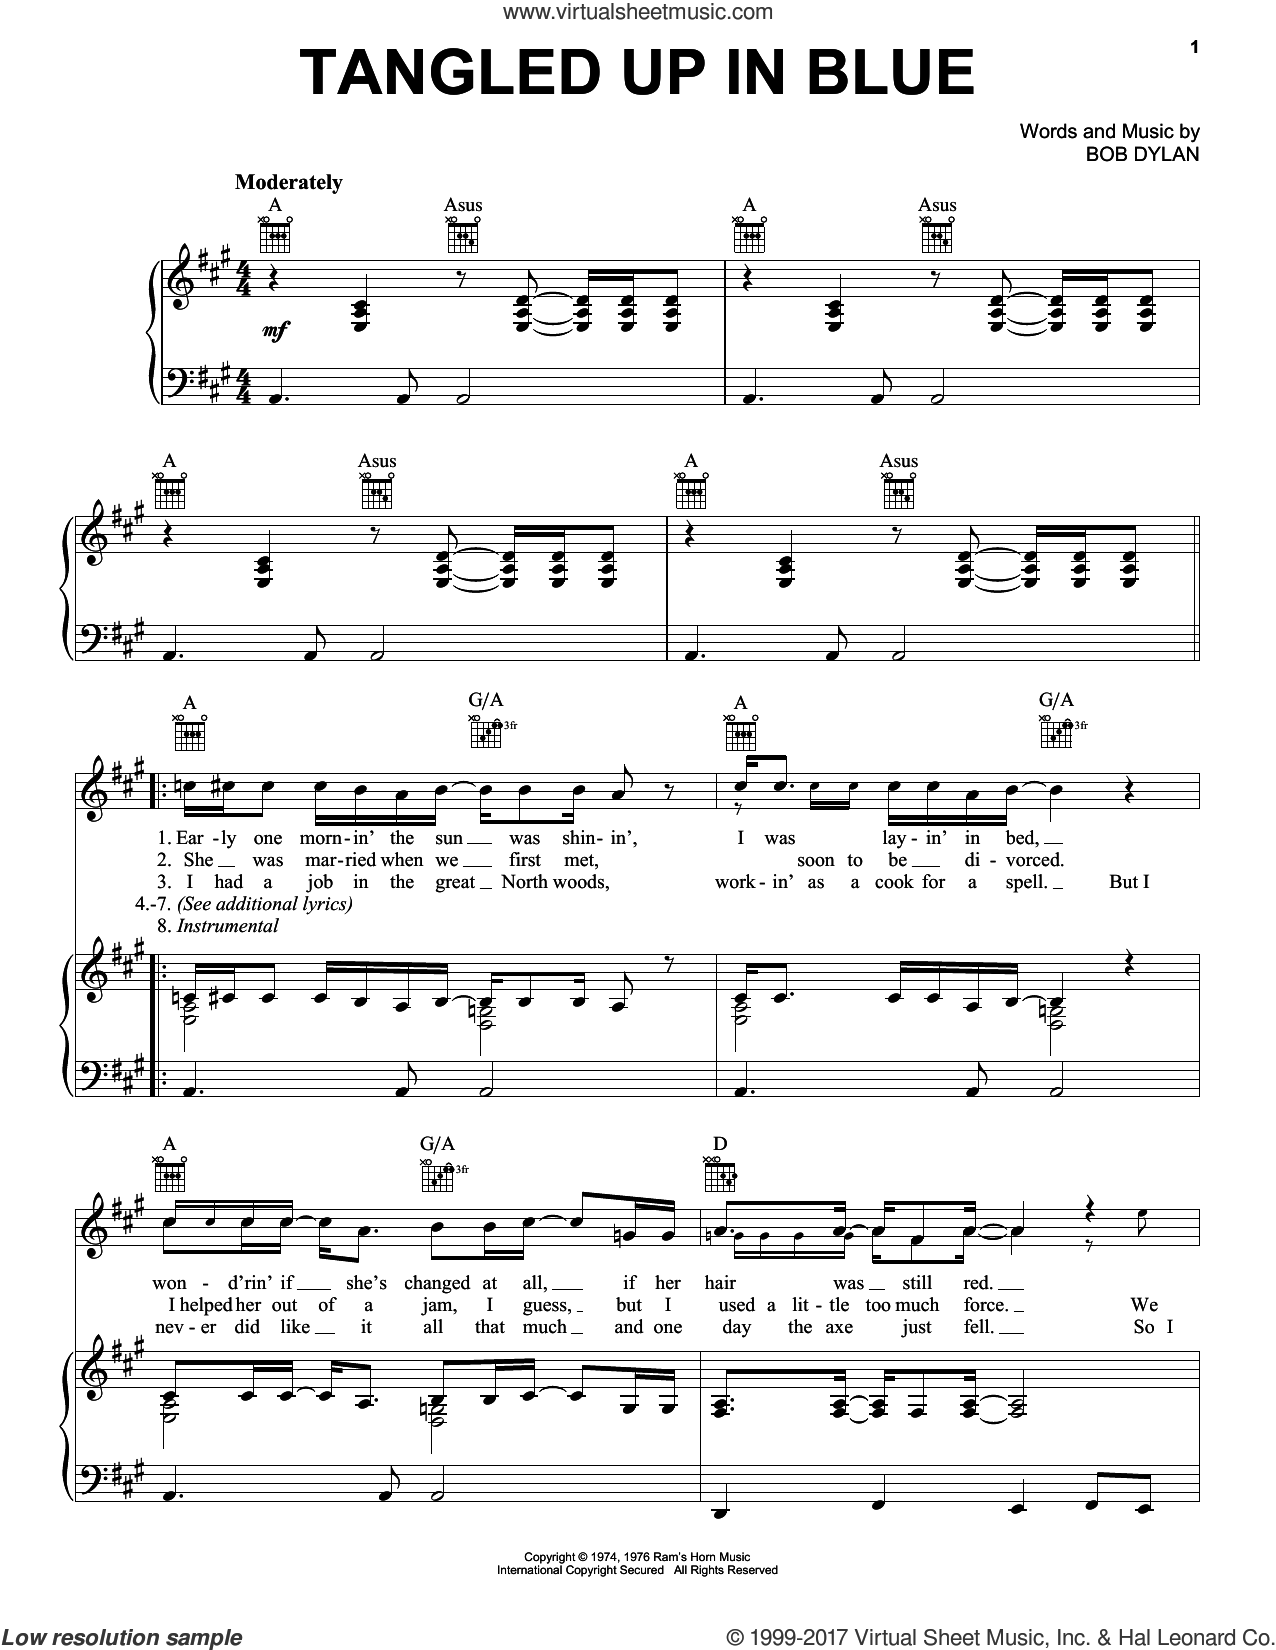 Tangled Up In Blue sheet music for voice, piano or guitar by Bob Dylan, intermediate skill level